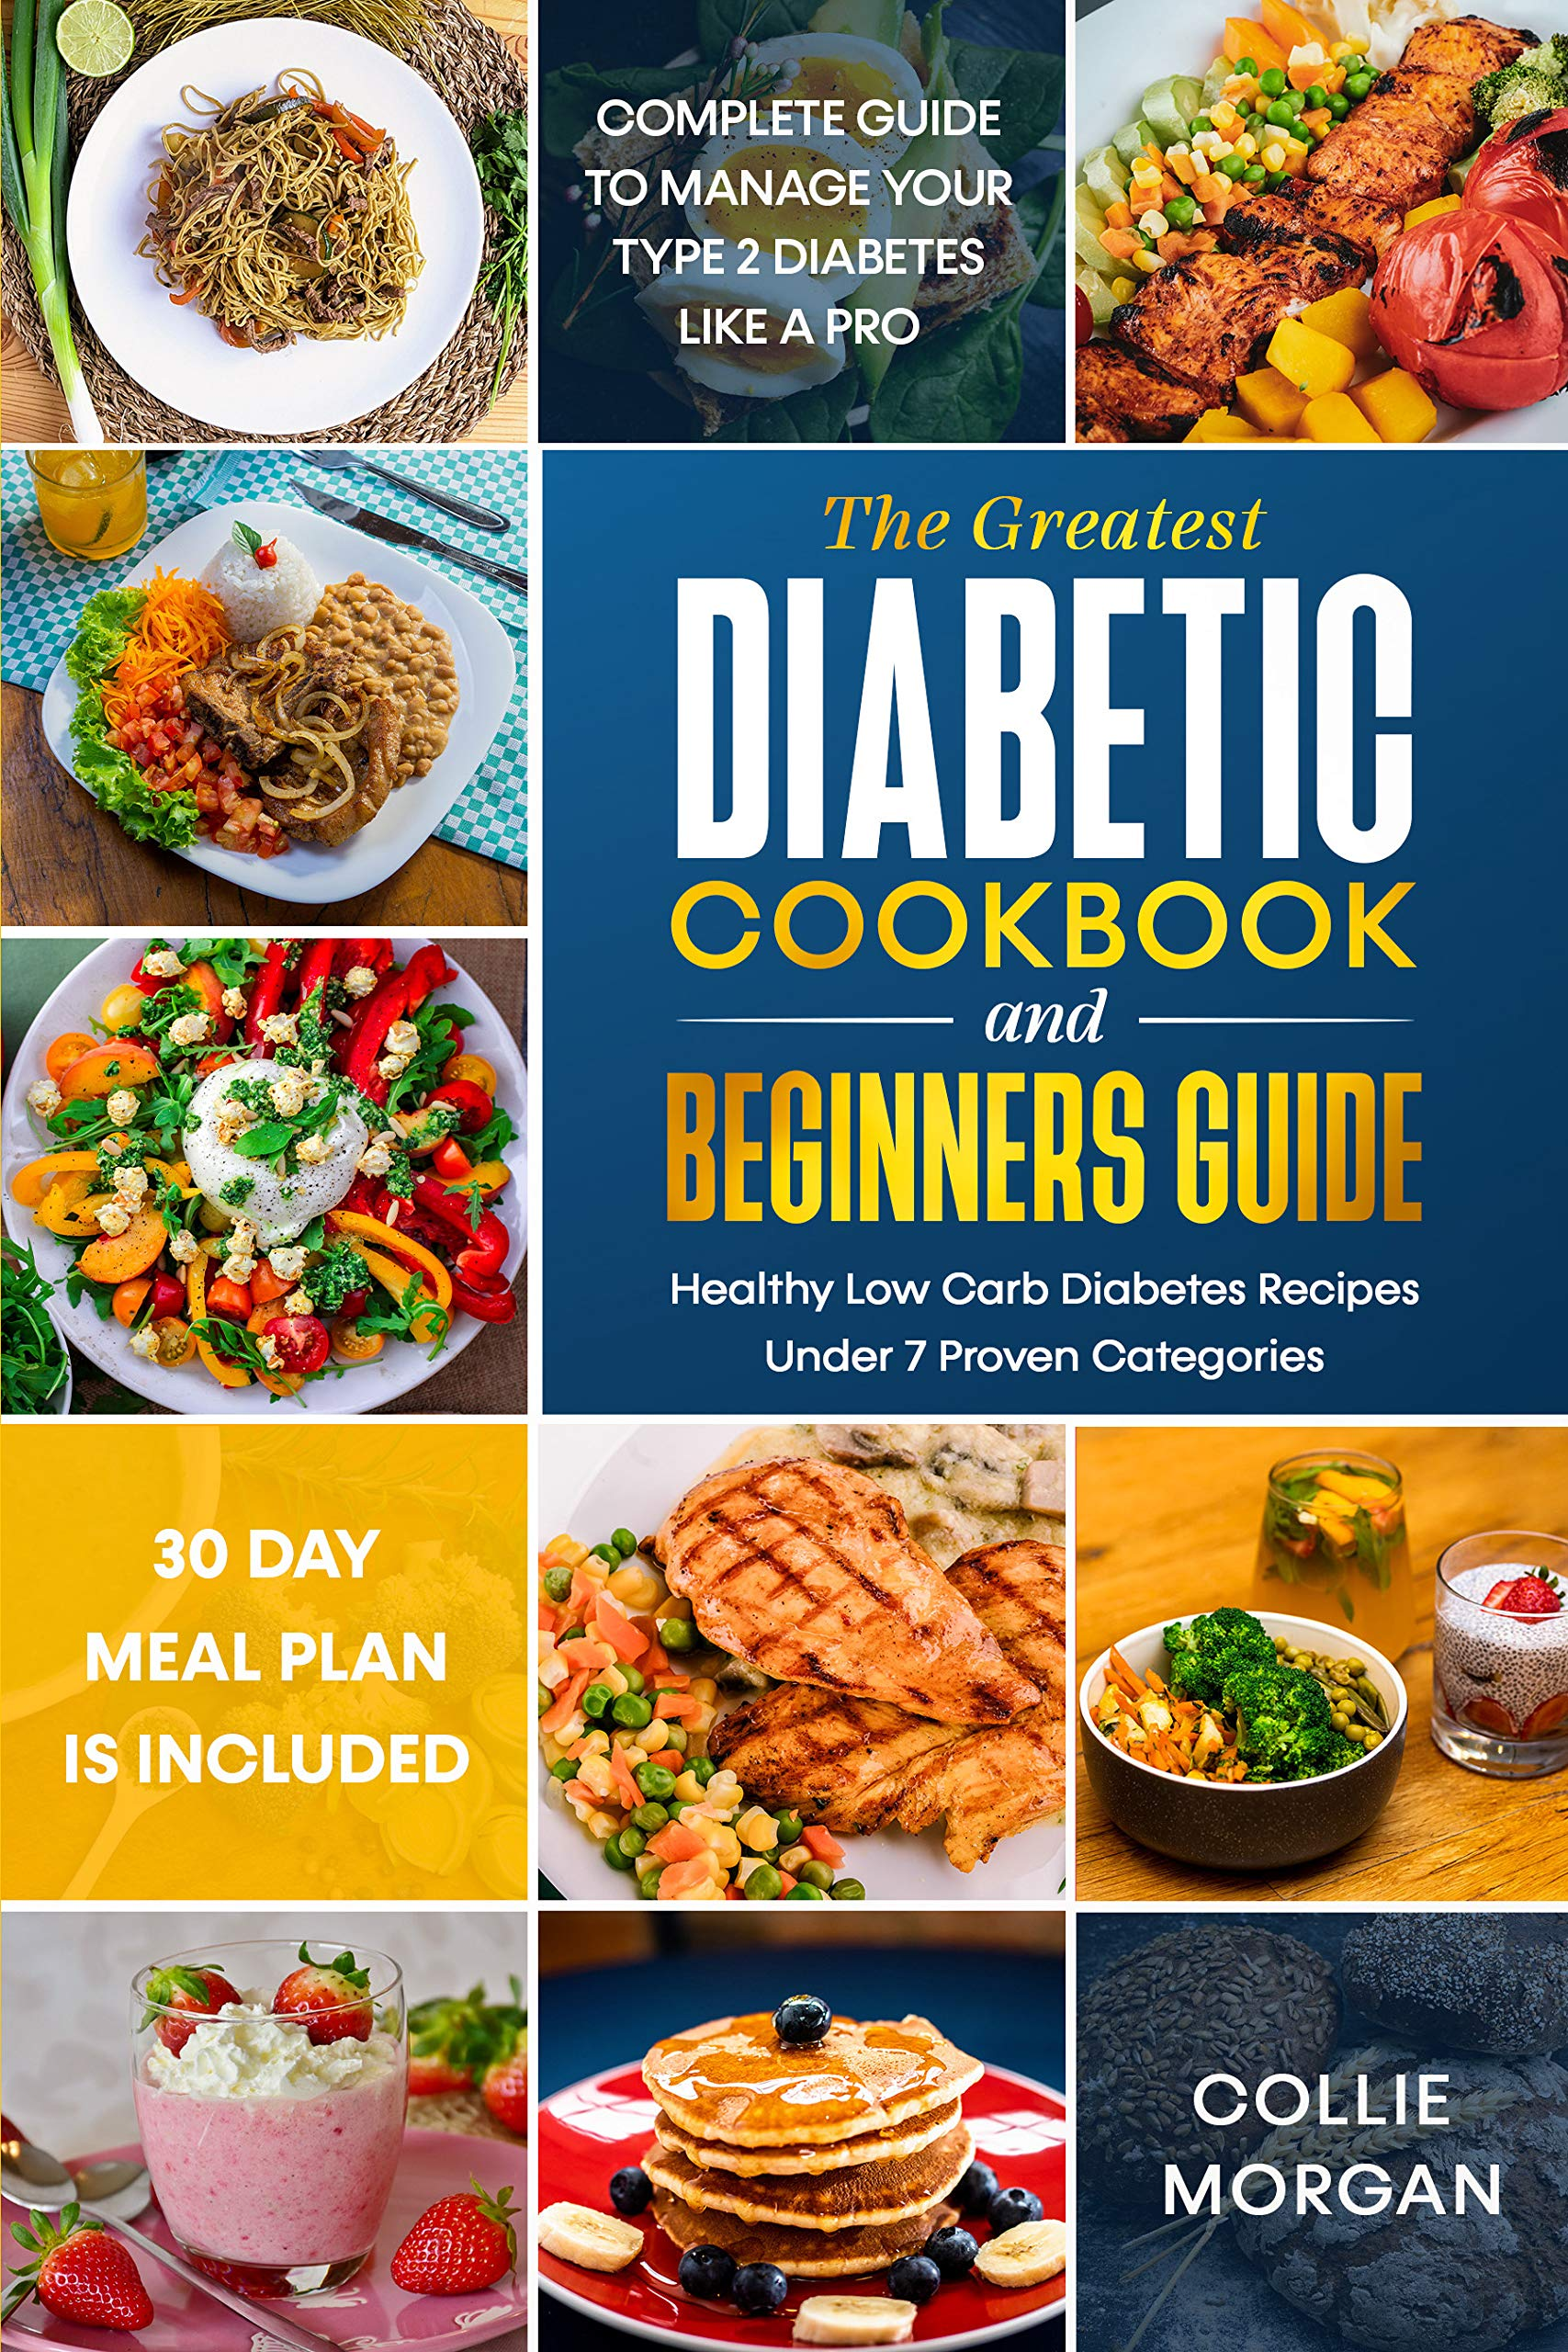 The Greatest Diabetic Cookbook and Beginners Guide: Complete Guide to Manage your Type 2 Diabetes like a Pro, Healthy Low Carb Diabetes Recipes under 7 Categories